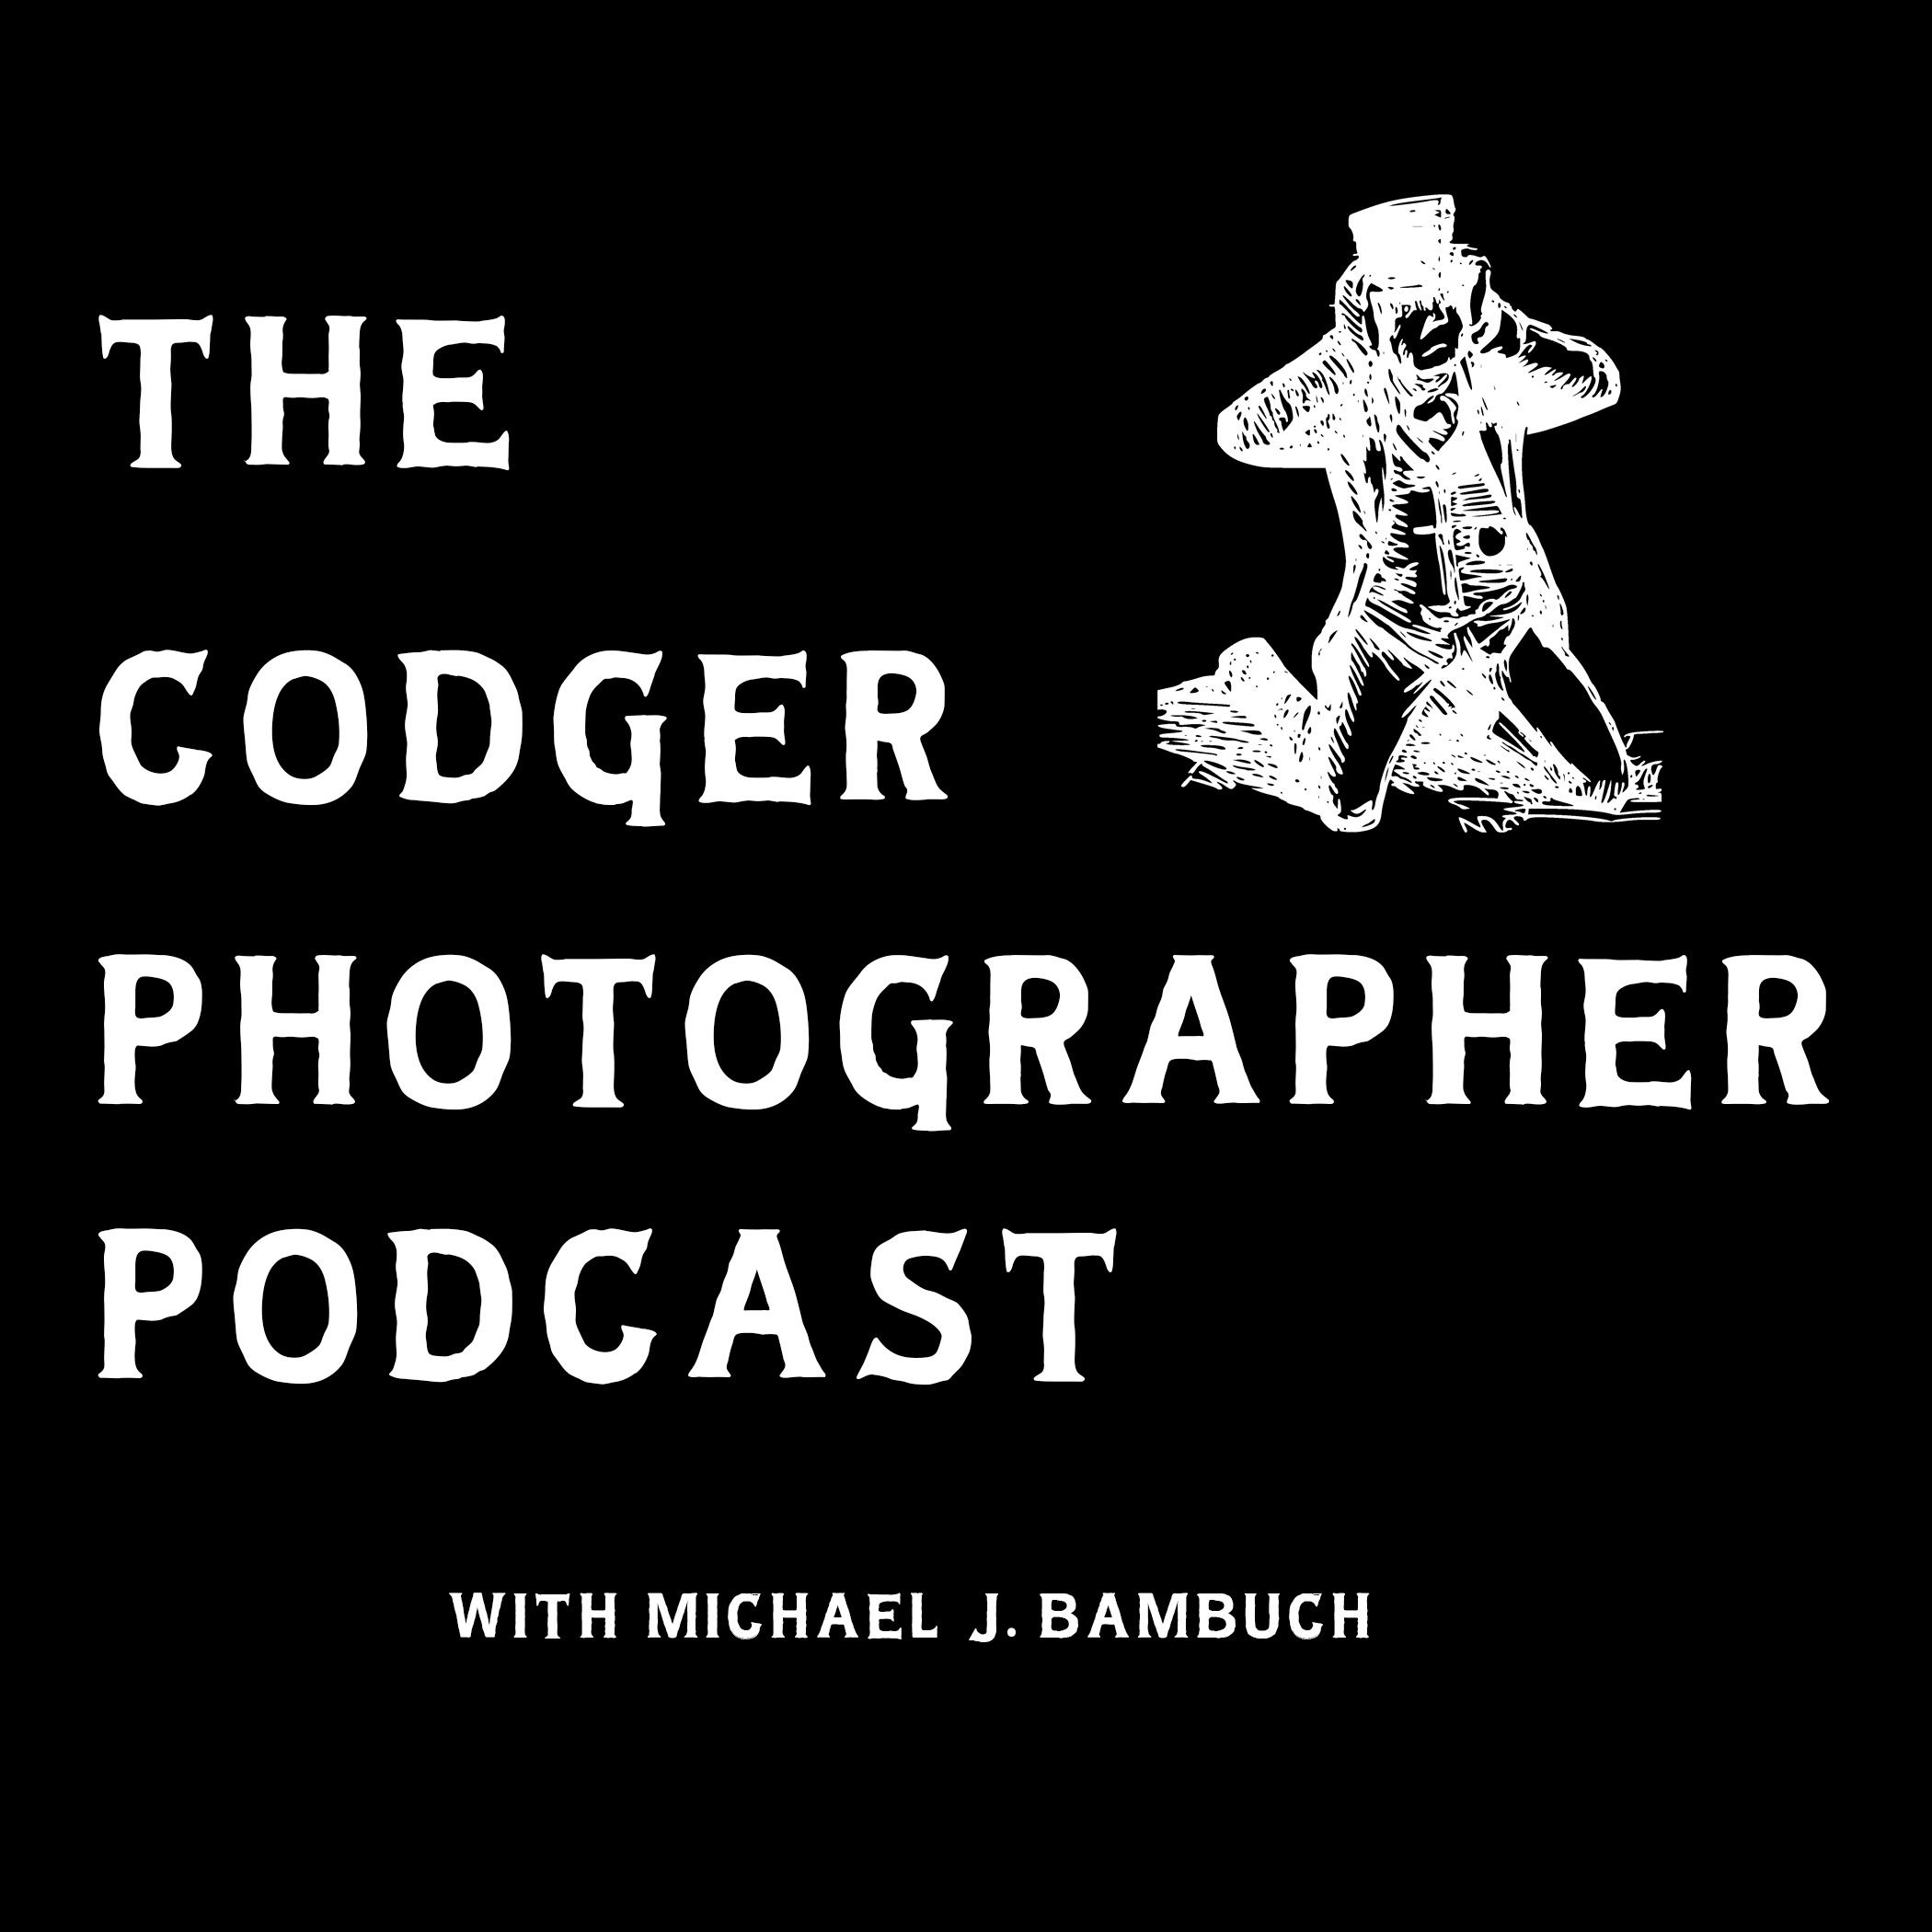 The Codger Photographer